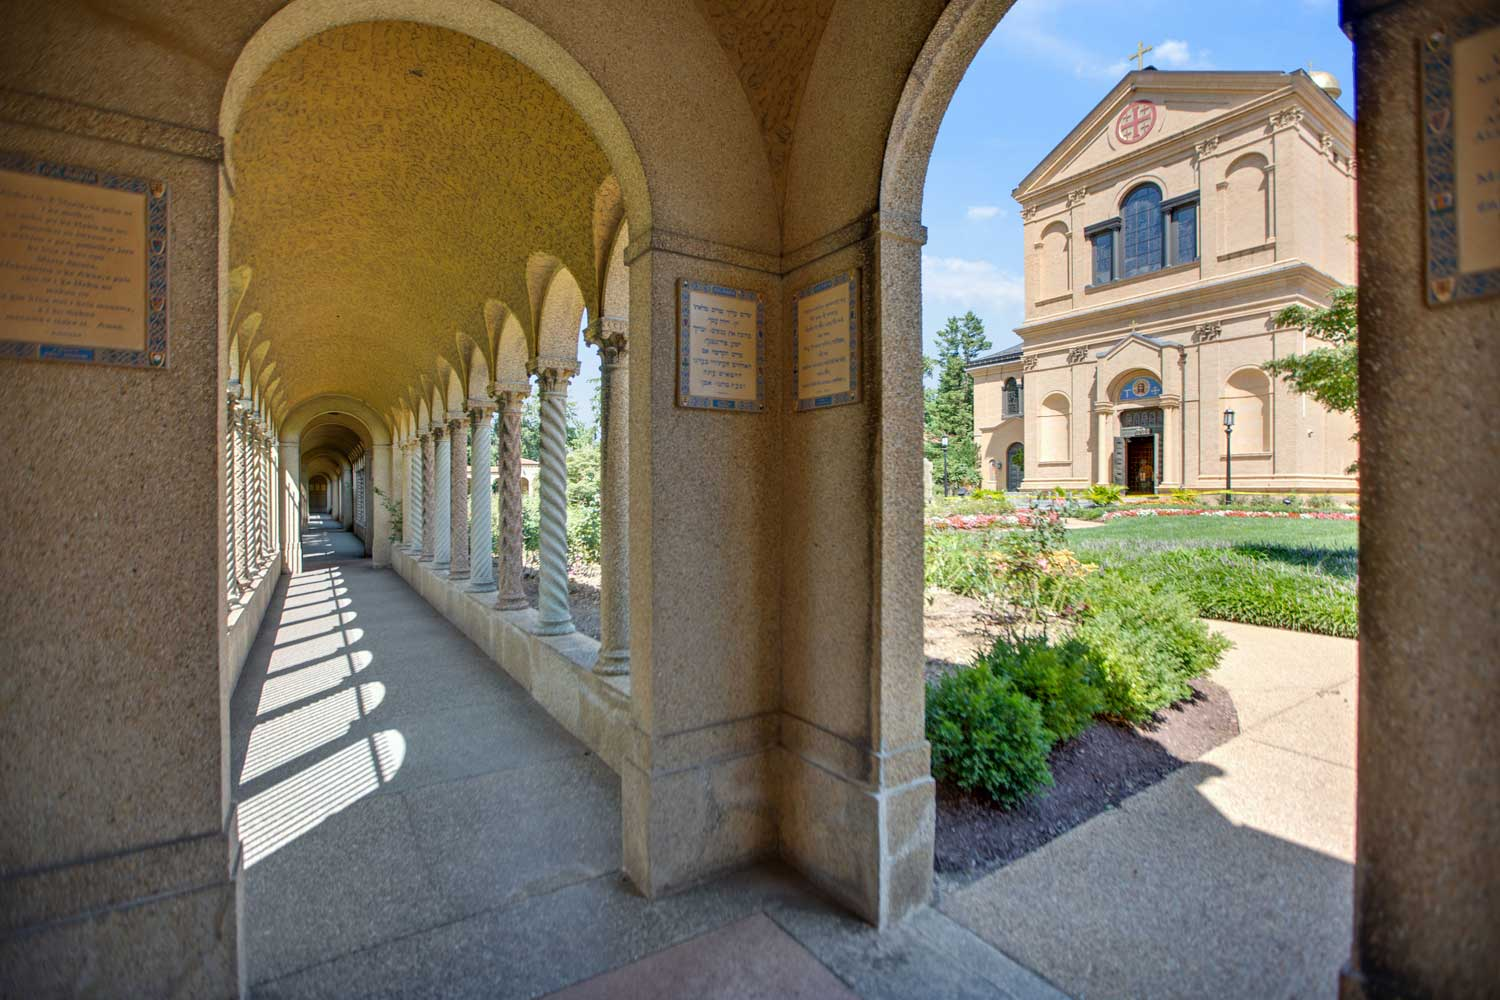 10 minutes to beautiful gardens at the Franciscan Monastery